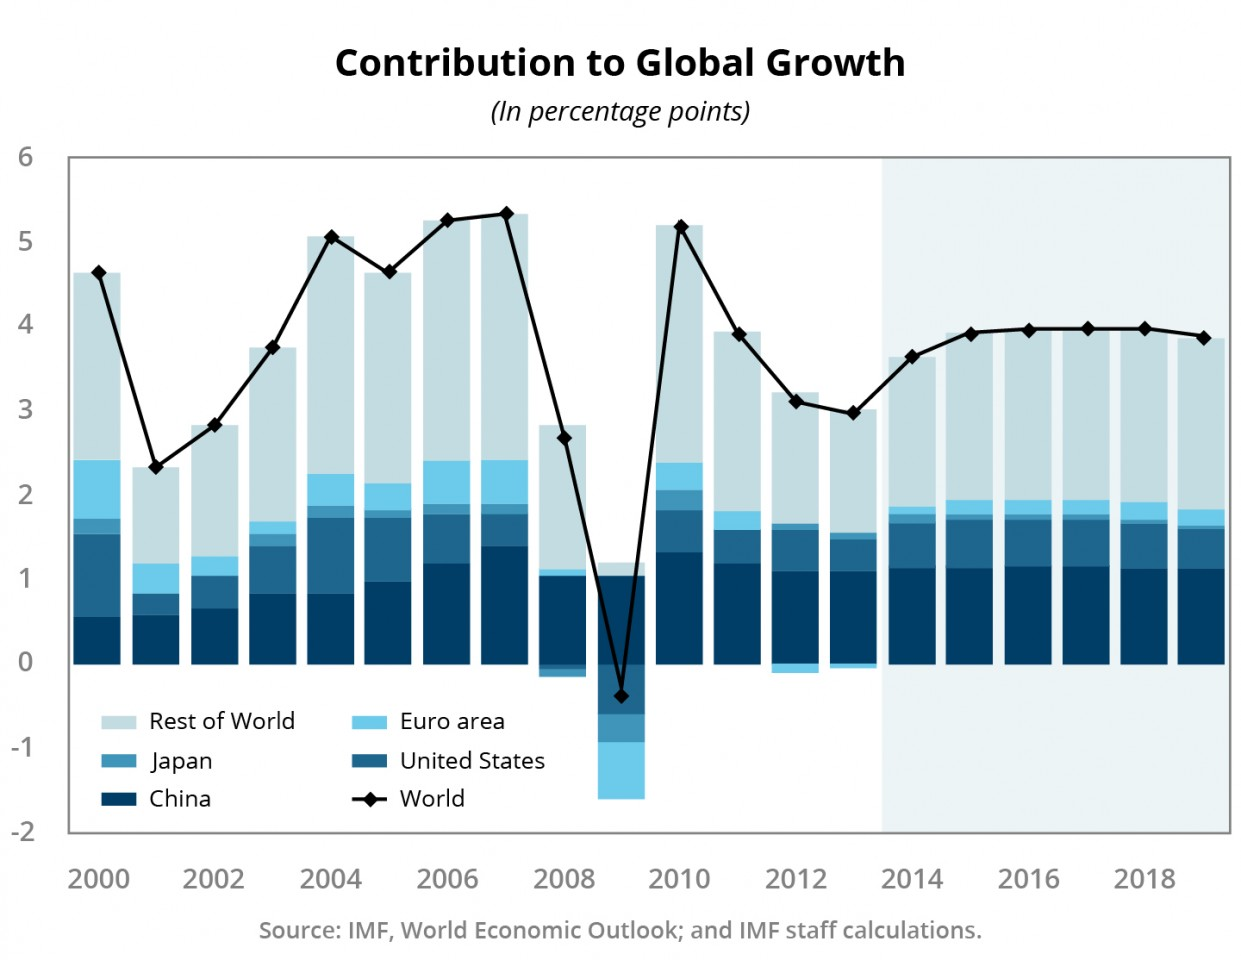 Figure 2: Contribution to global growth